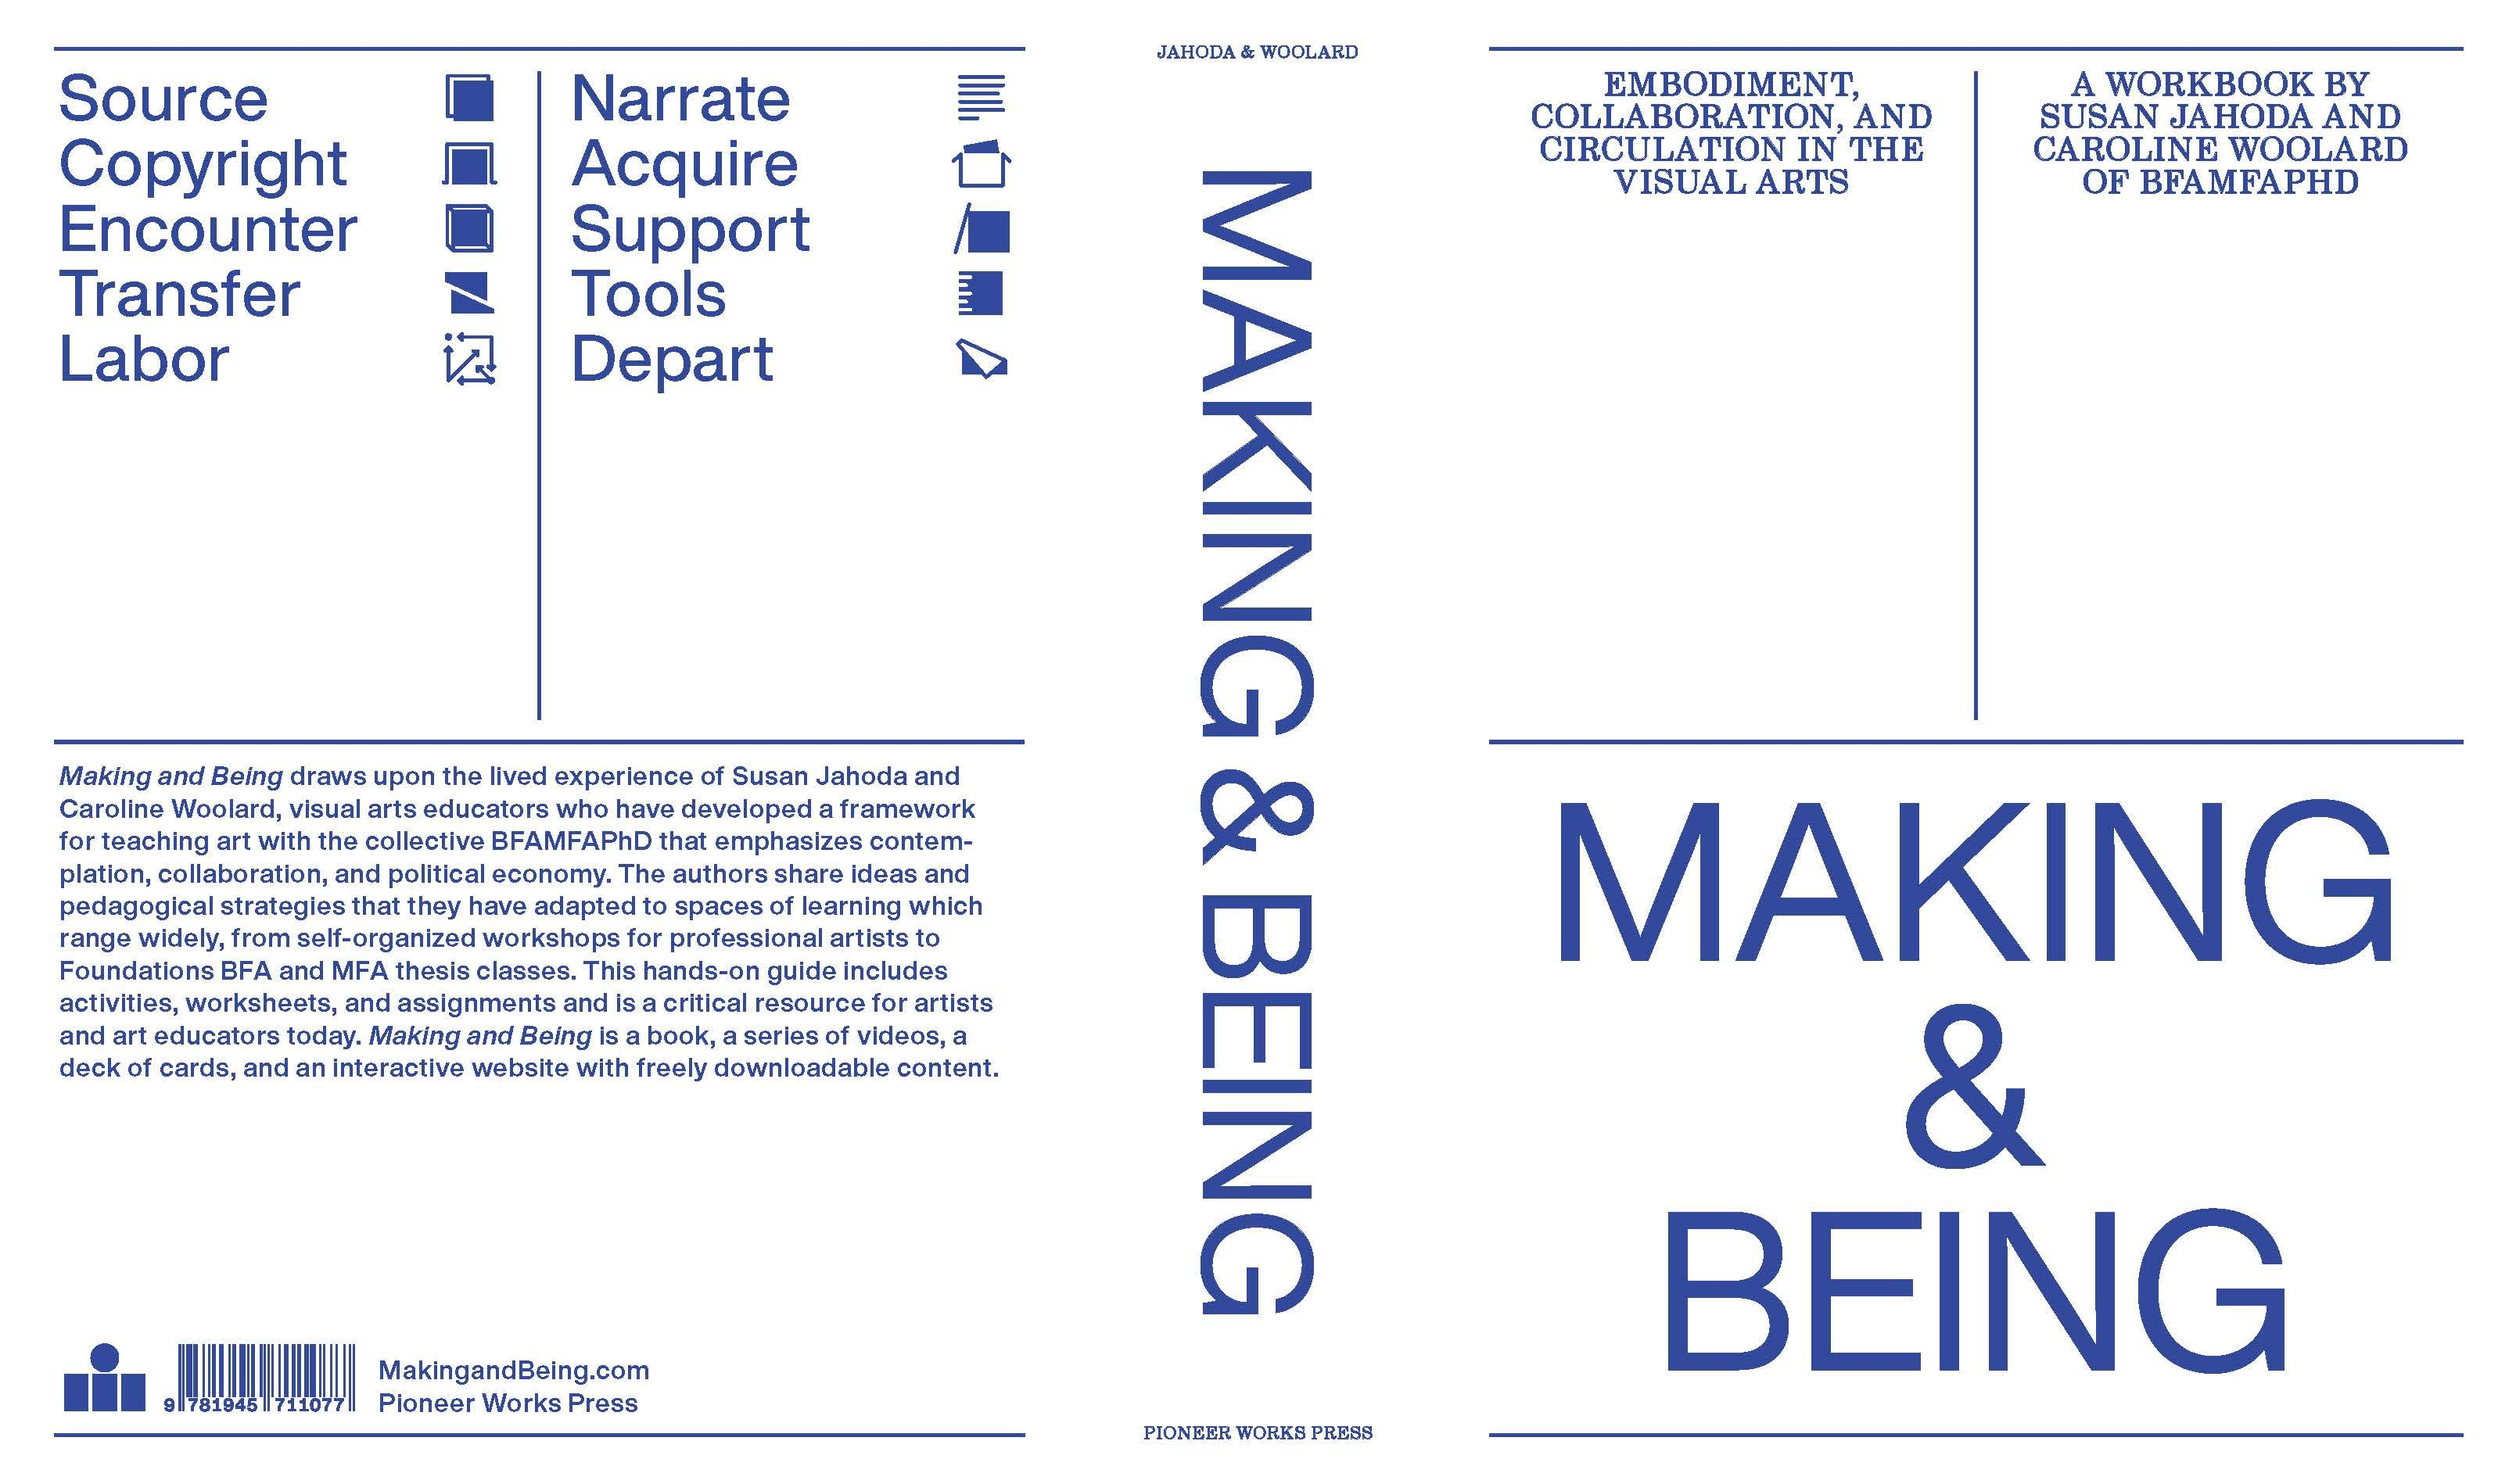 Making and Being